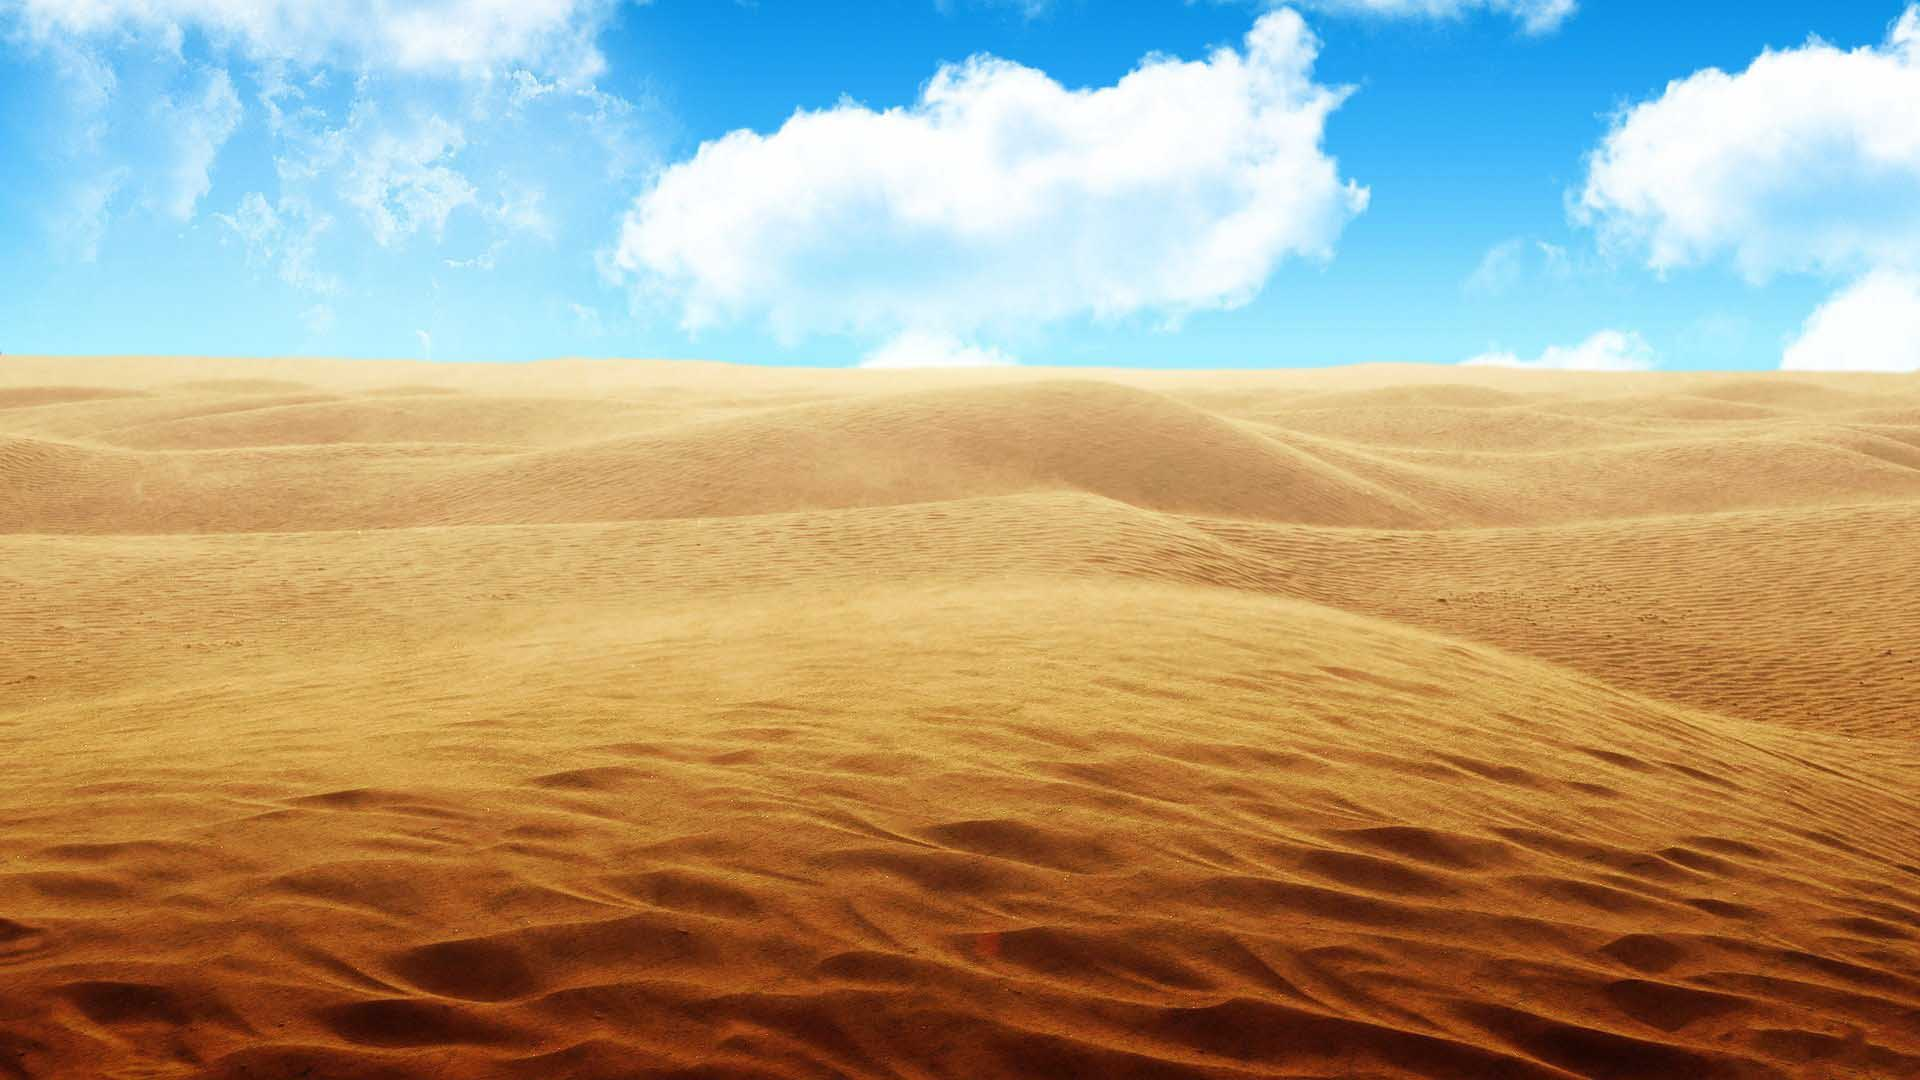 Savannah Desert Wallpaper